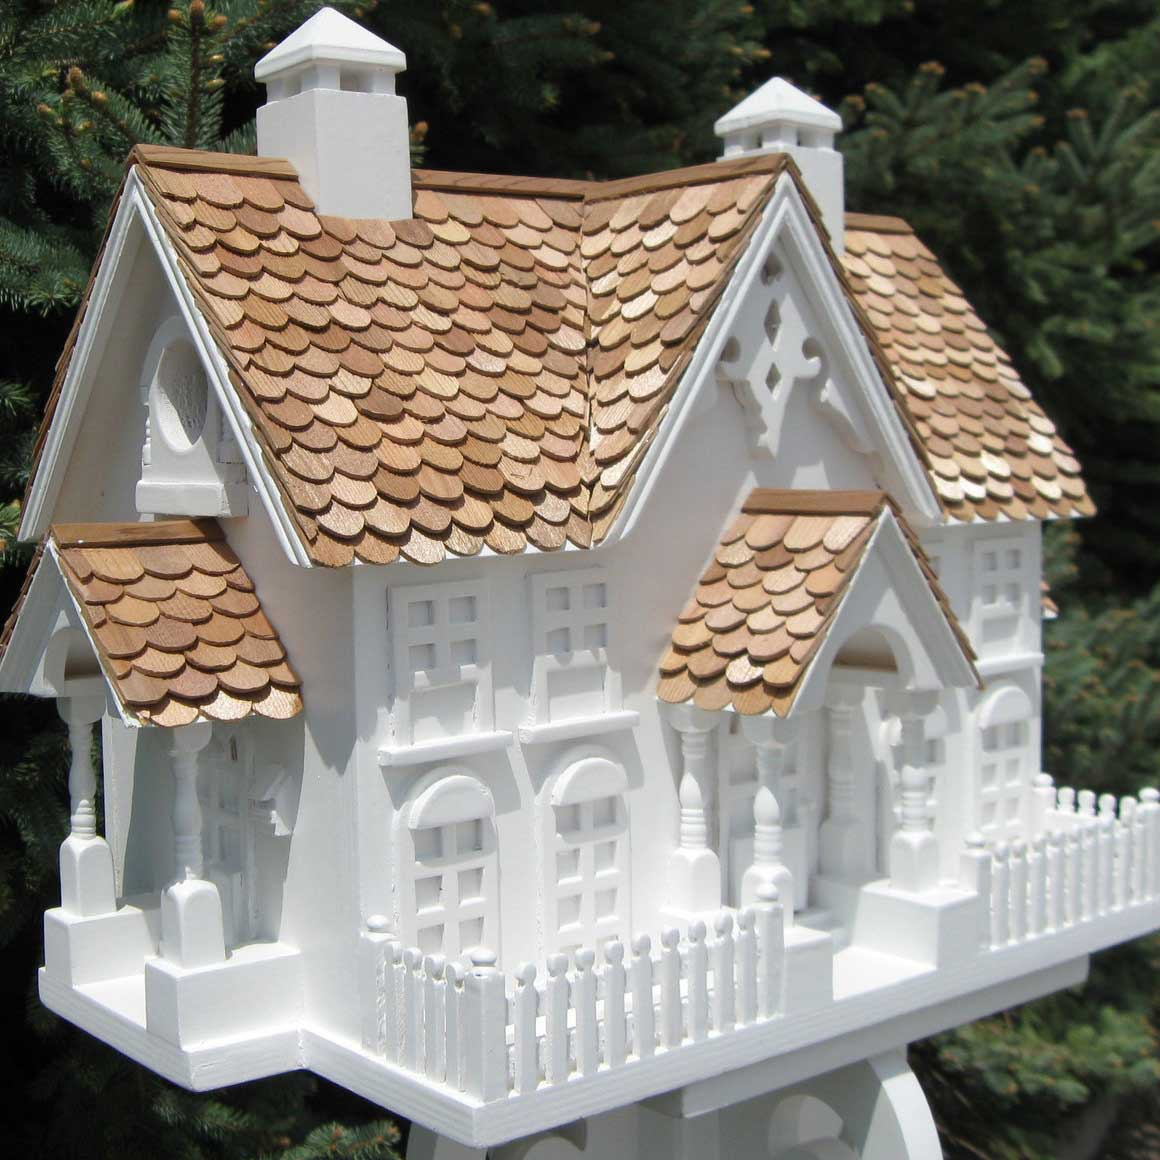 Decorative Wrension Bird House - Yard Envy